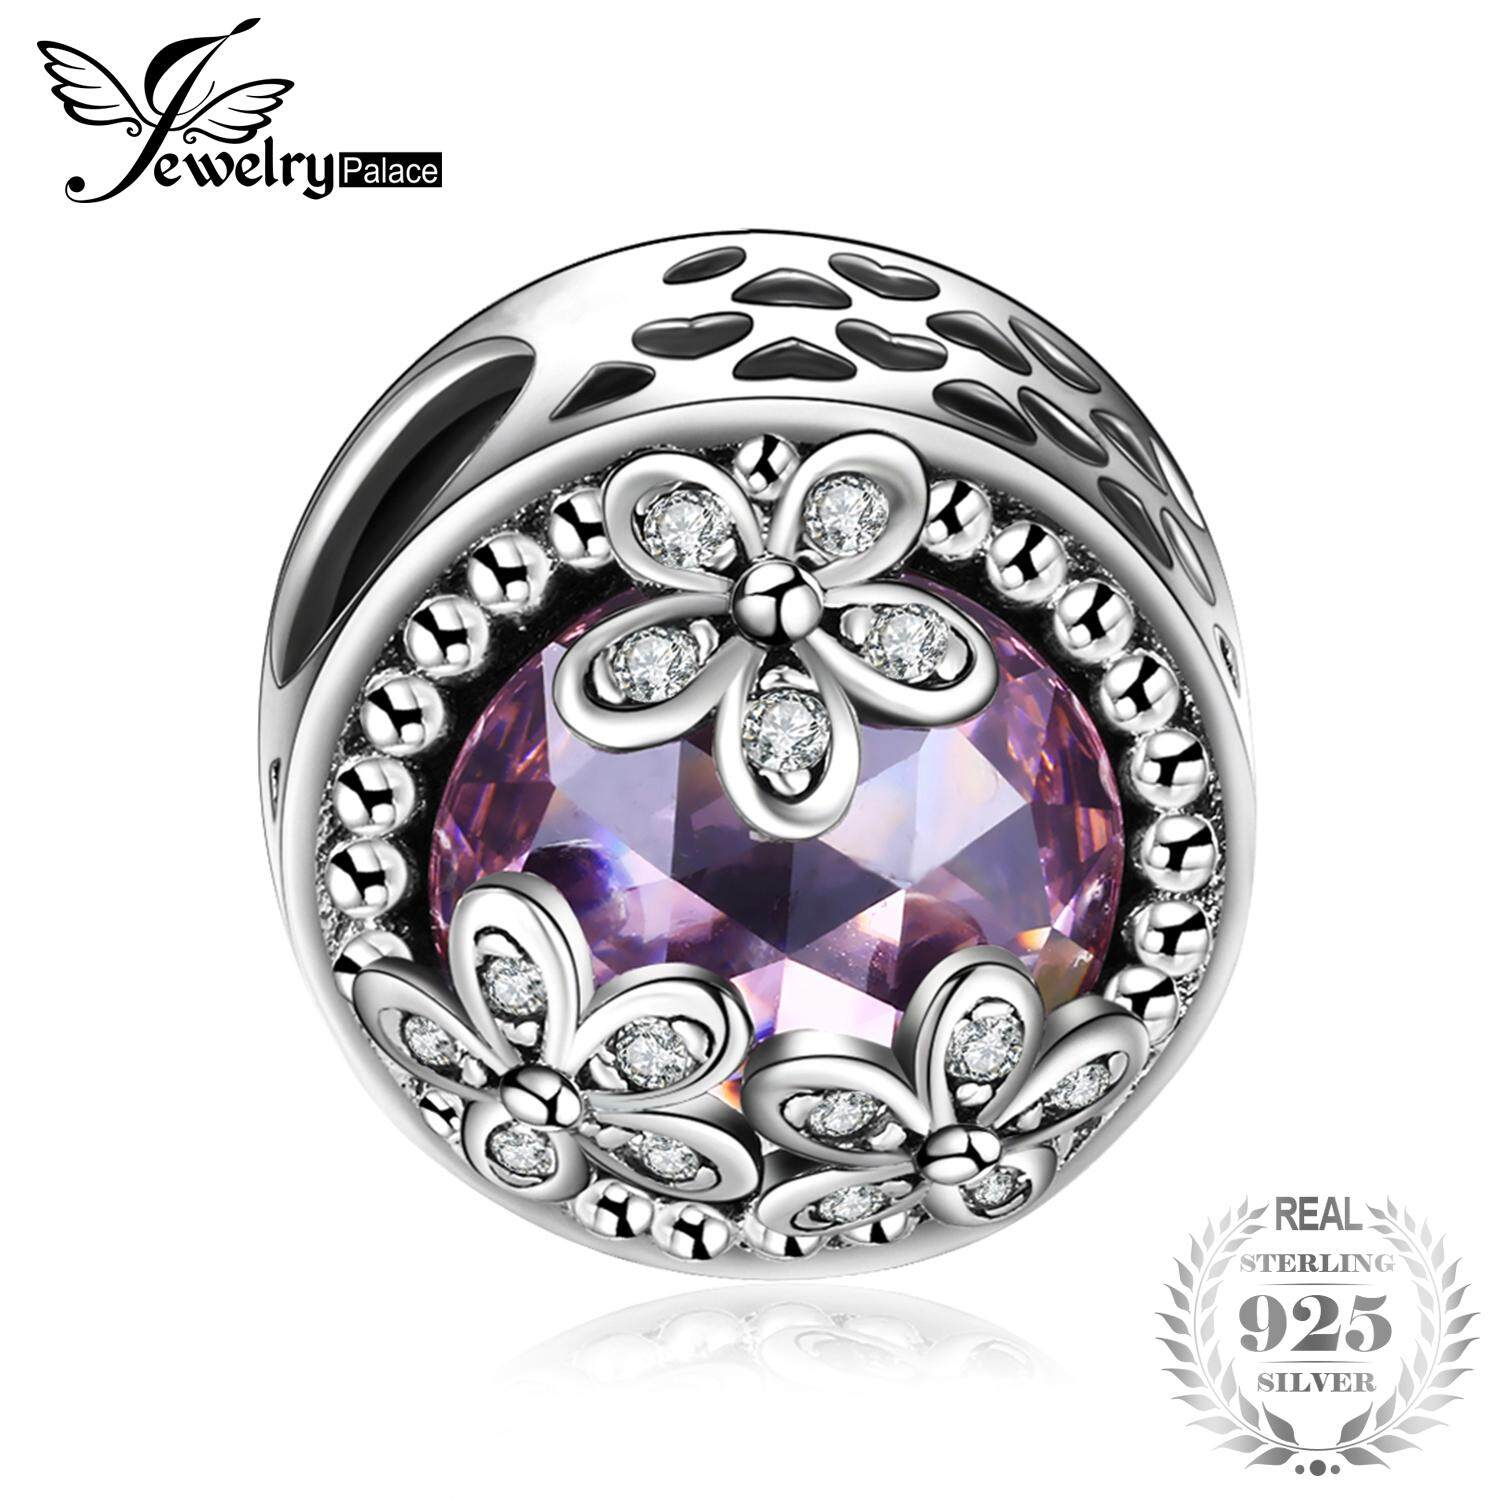 Jewelry & Accessories Jewelrypalace Diy Bead Charm For Women Bracelets Magic Monkey Bead 925 Sterling Silver Charm Fit Bracelets Fashion Brands Beads & Jewelry Making